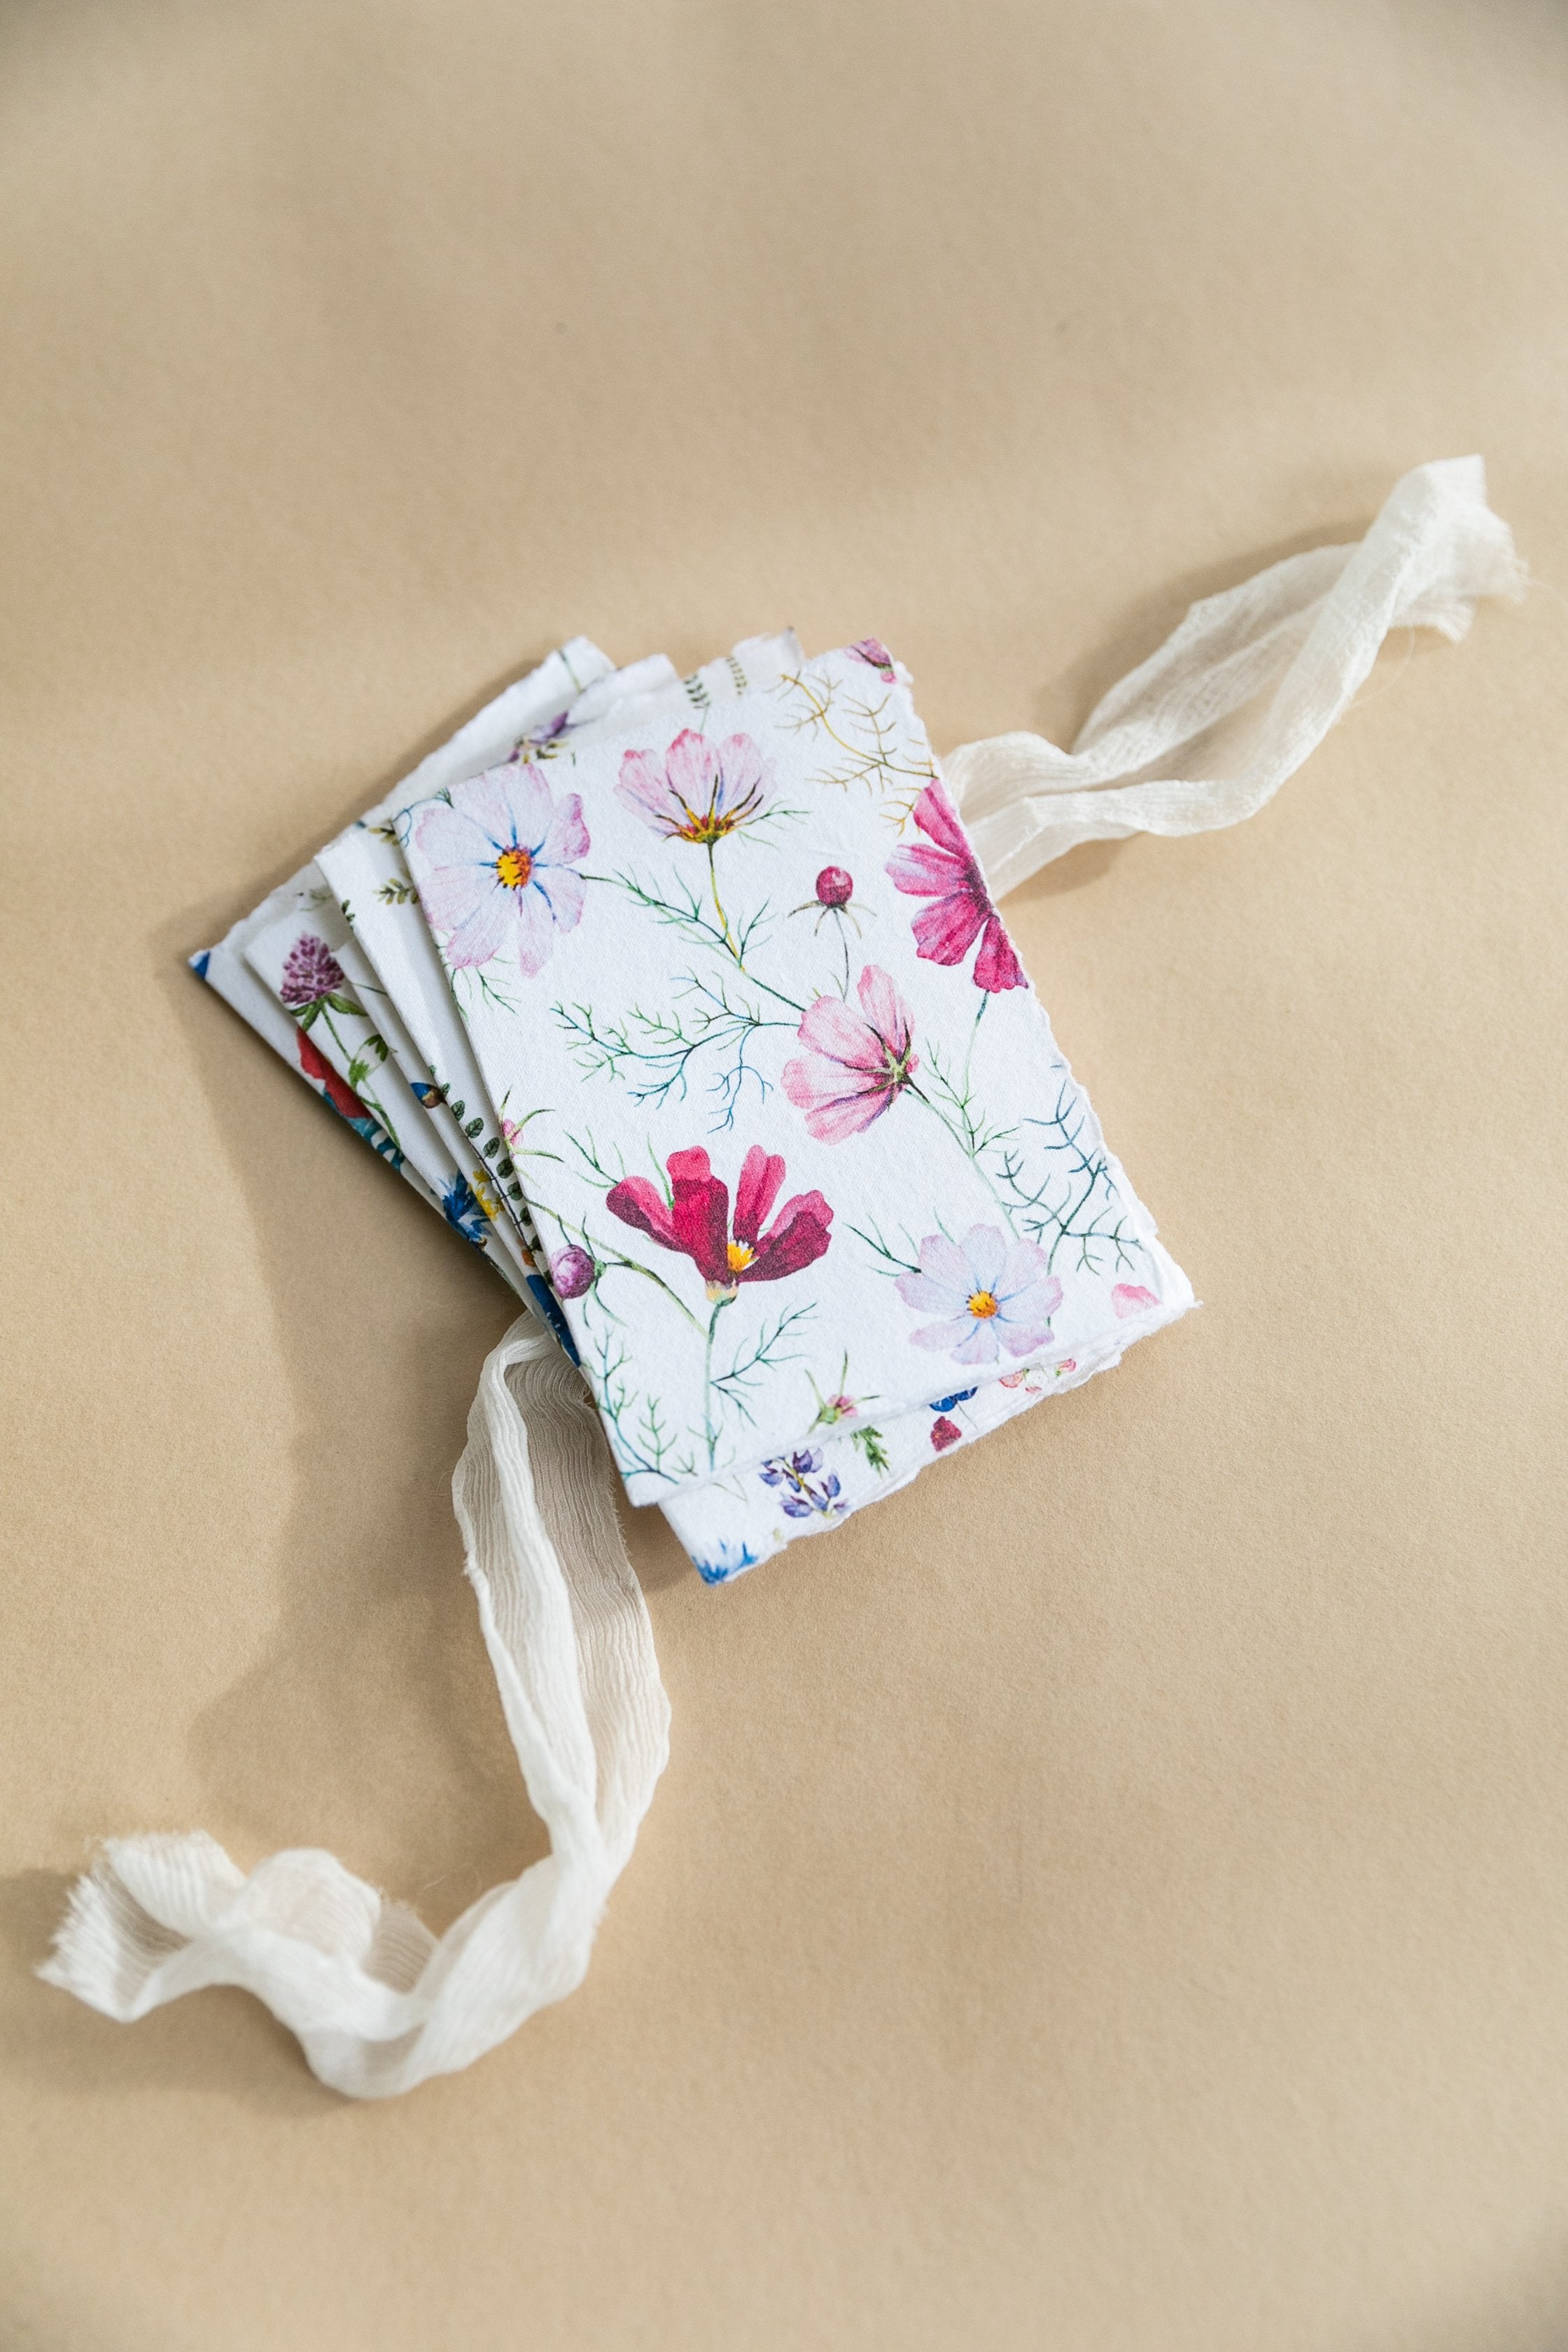 Floral Gift Cards on Handmade Cotton Rag Paper